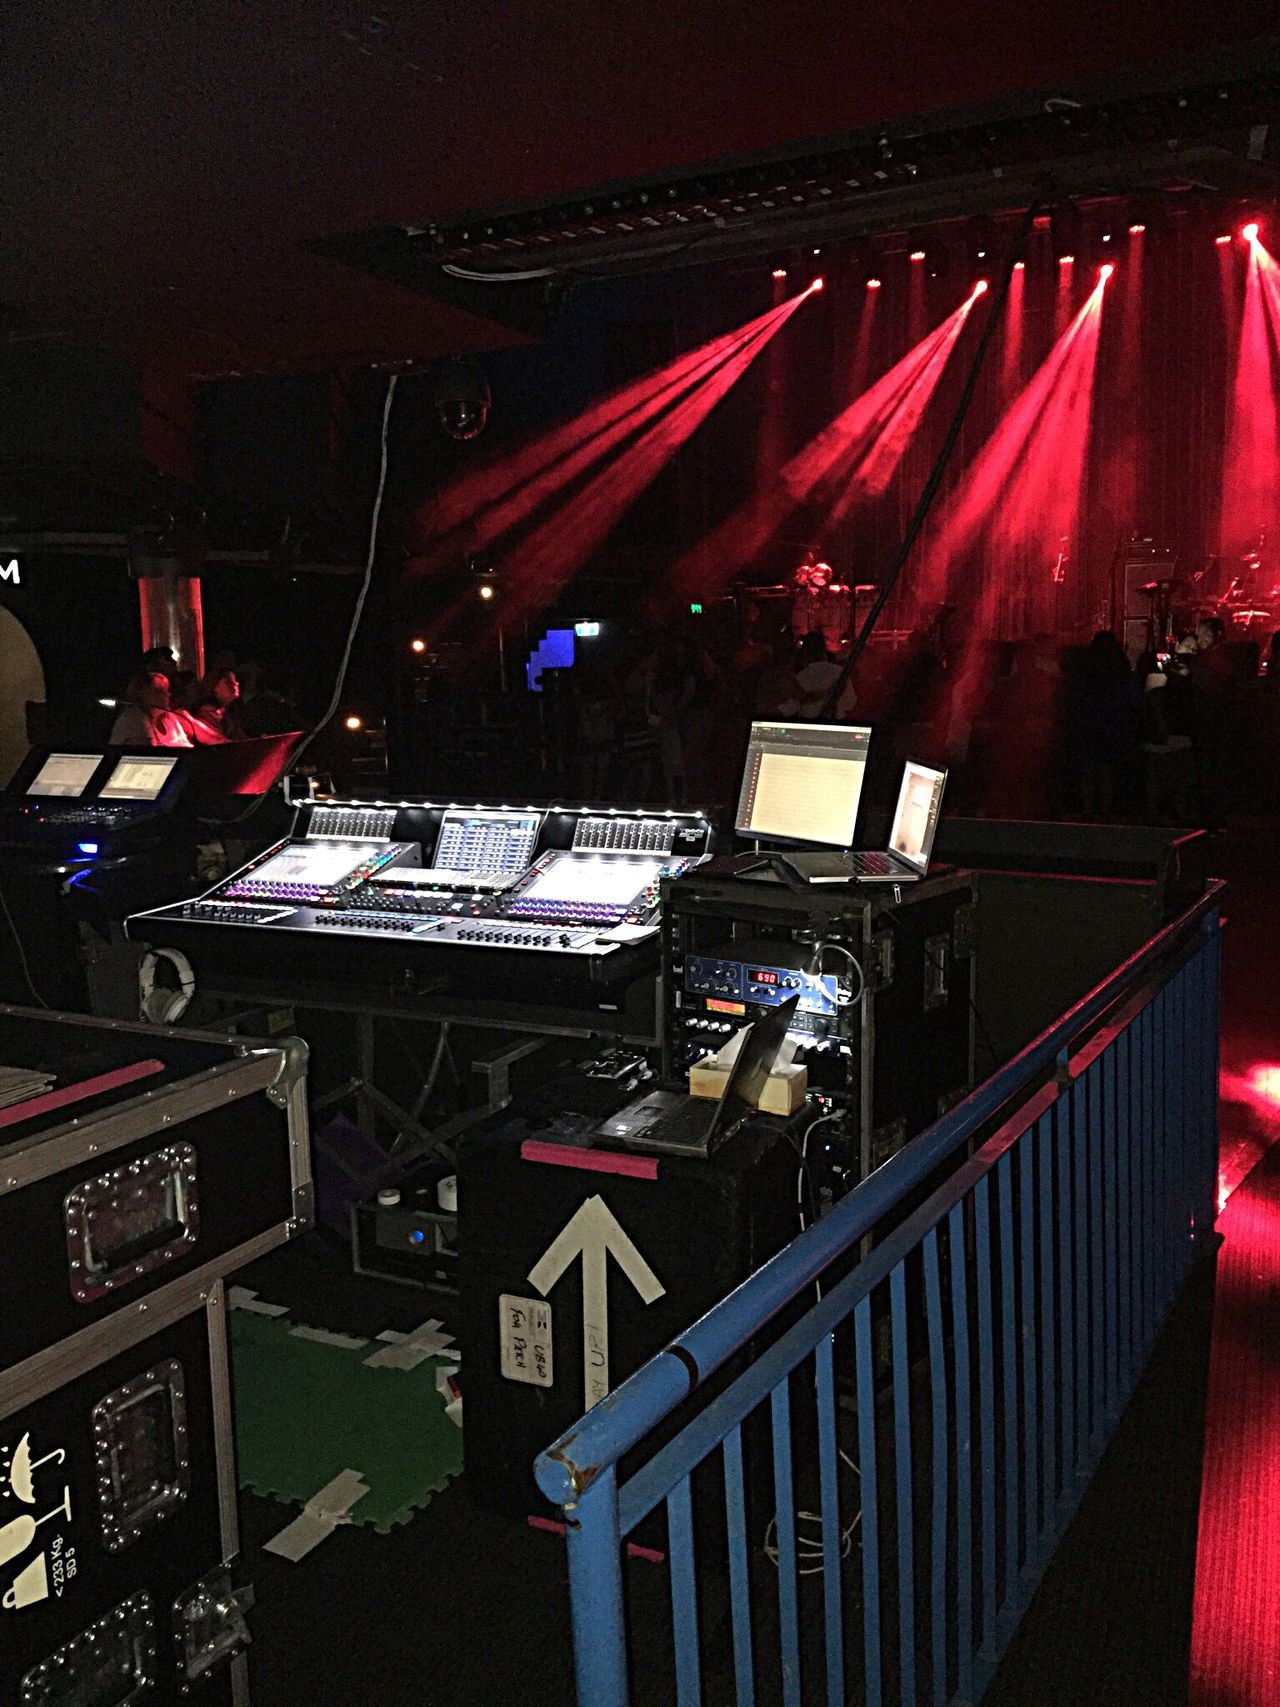 Music Equipment: Waiting for the Band Concert Equipment Sound Board Mixing Console Mixing Sound Mixing Equipment Concert Equipment Sound System Sound Check Waiting For Band Music Live Music Lights Concert Lights Band Set Up Concert Photography Concert Hall  Rock Concert